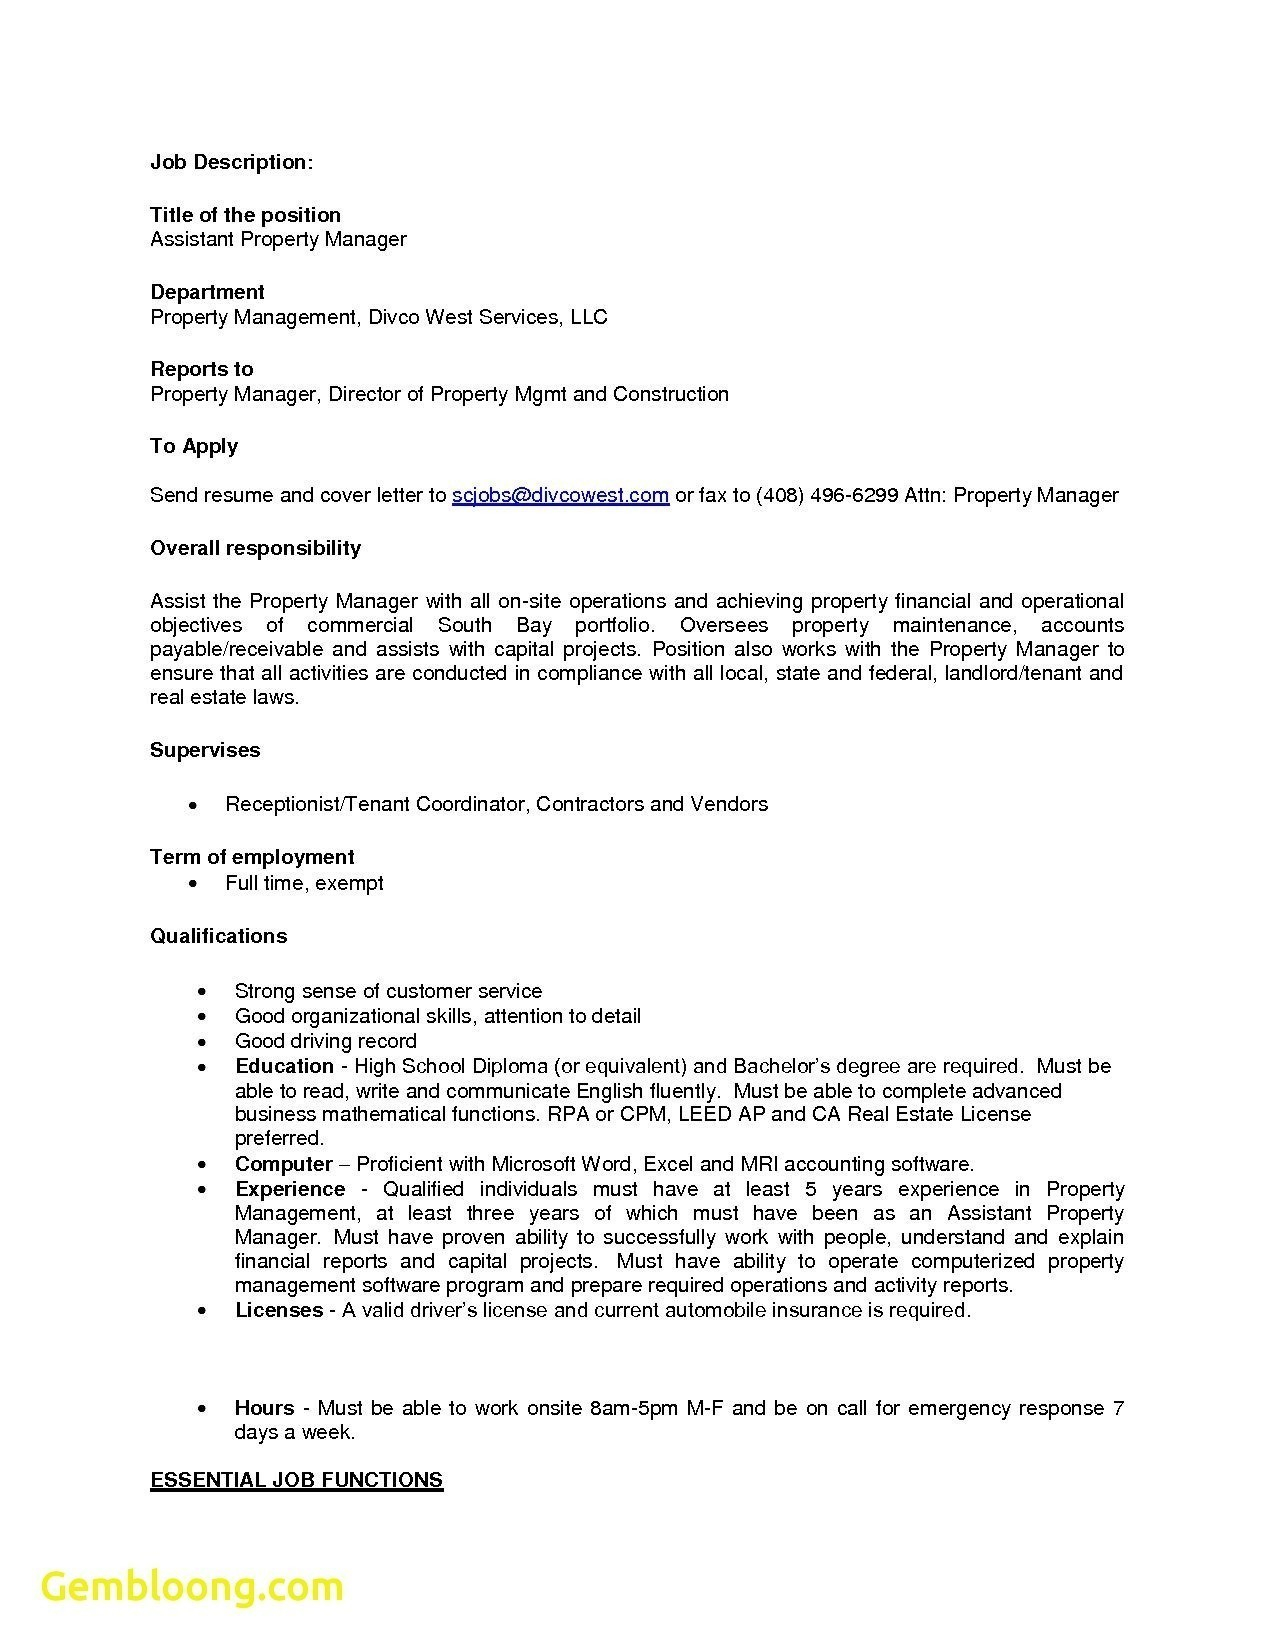 conditional offer of employment letter template samples letter